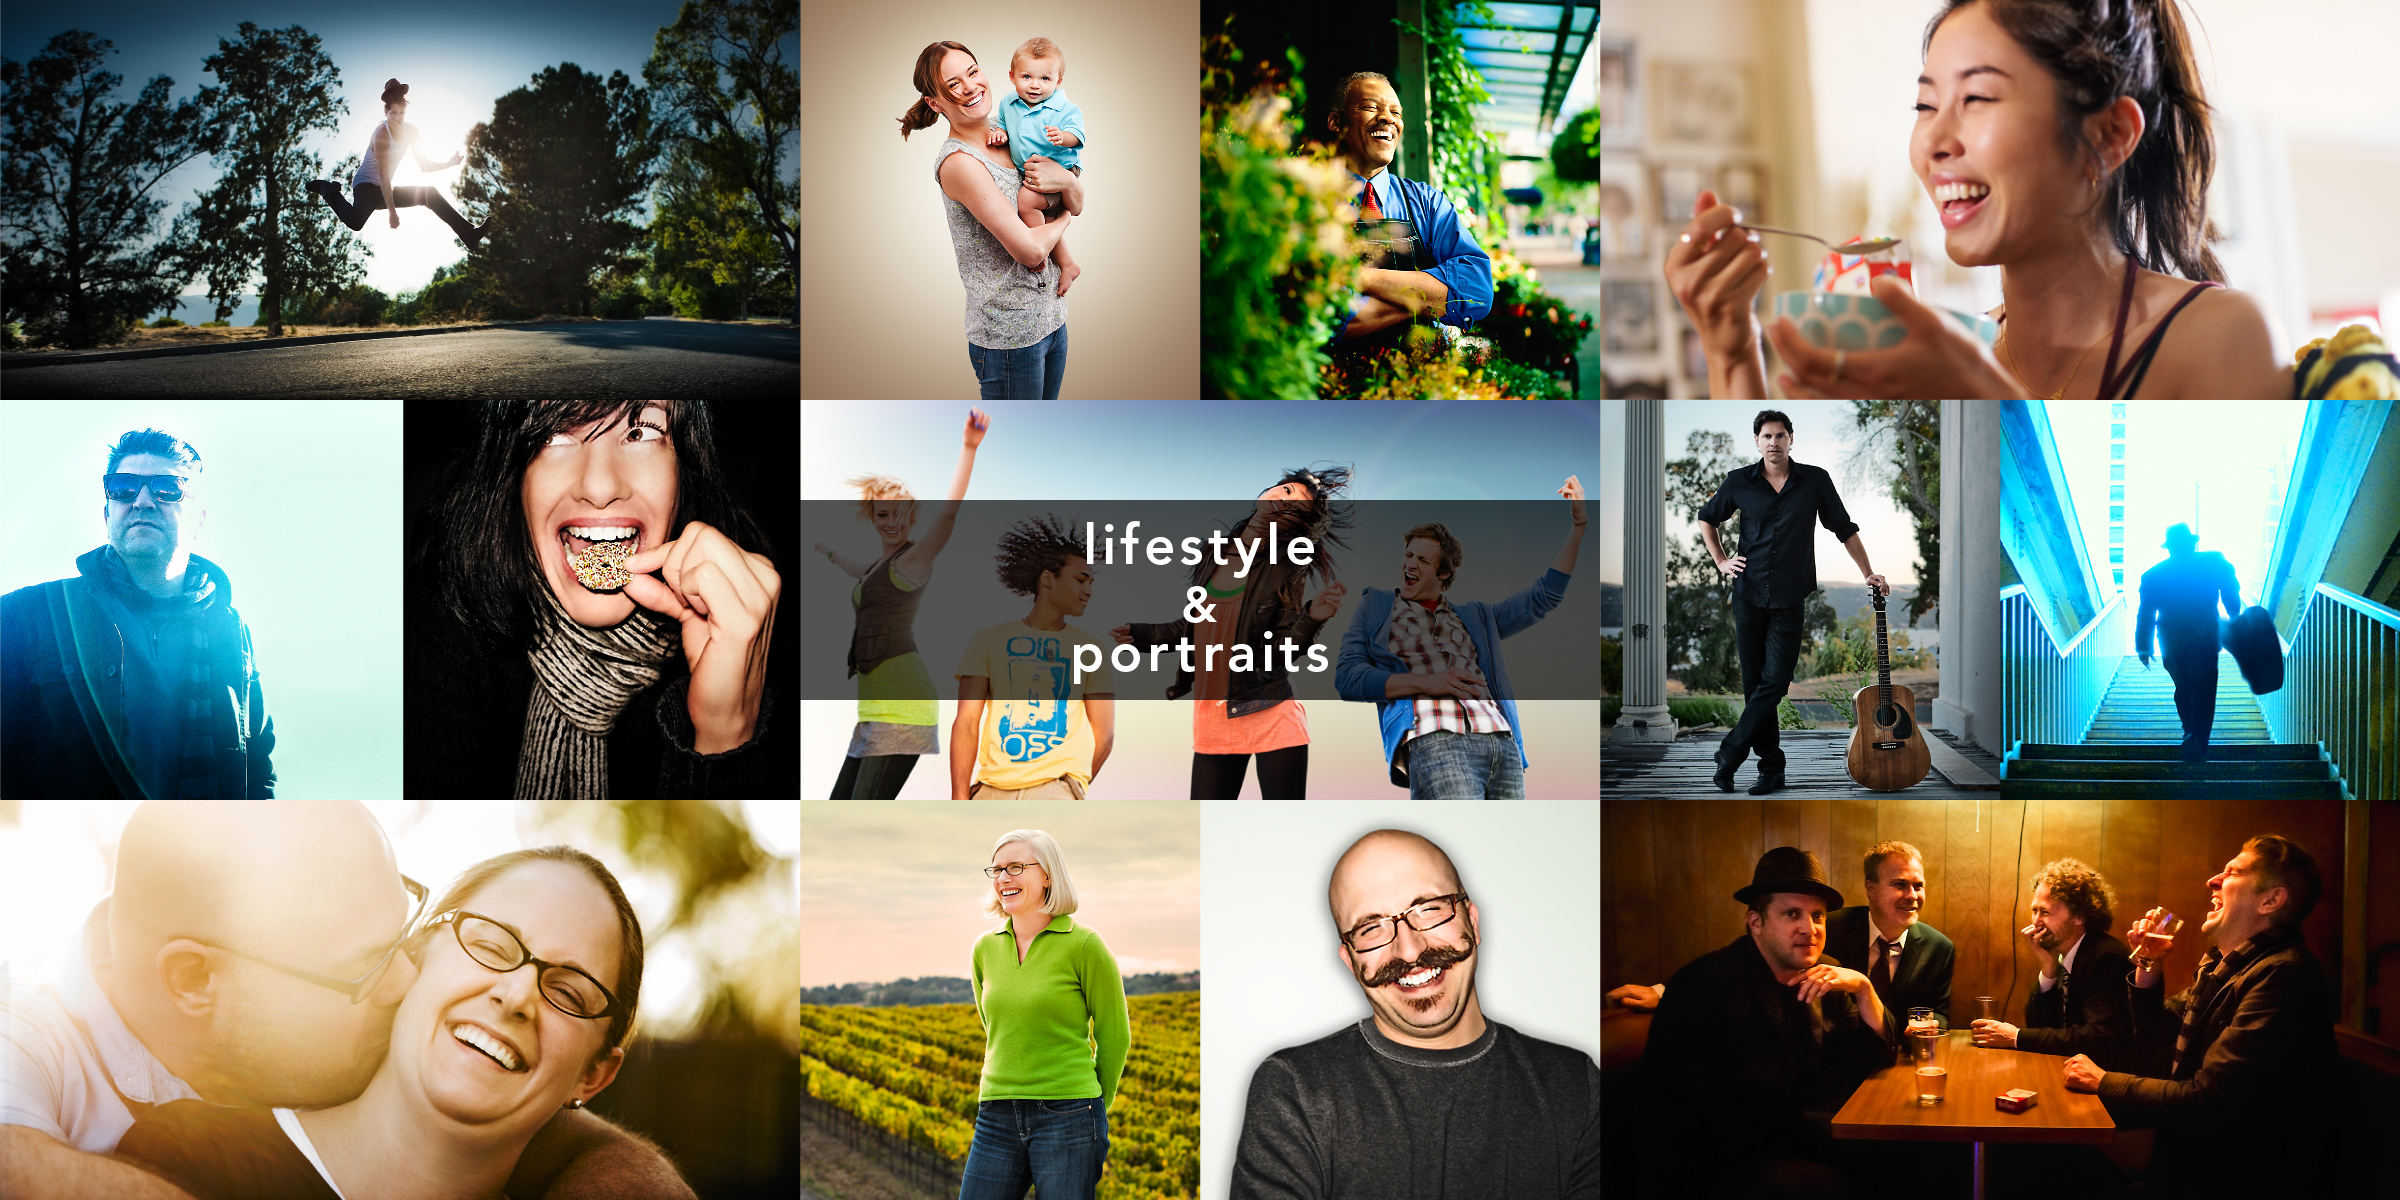 z_slide_as_grid_of_images-lifestyle_and_portraits_04_ssp1